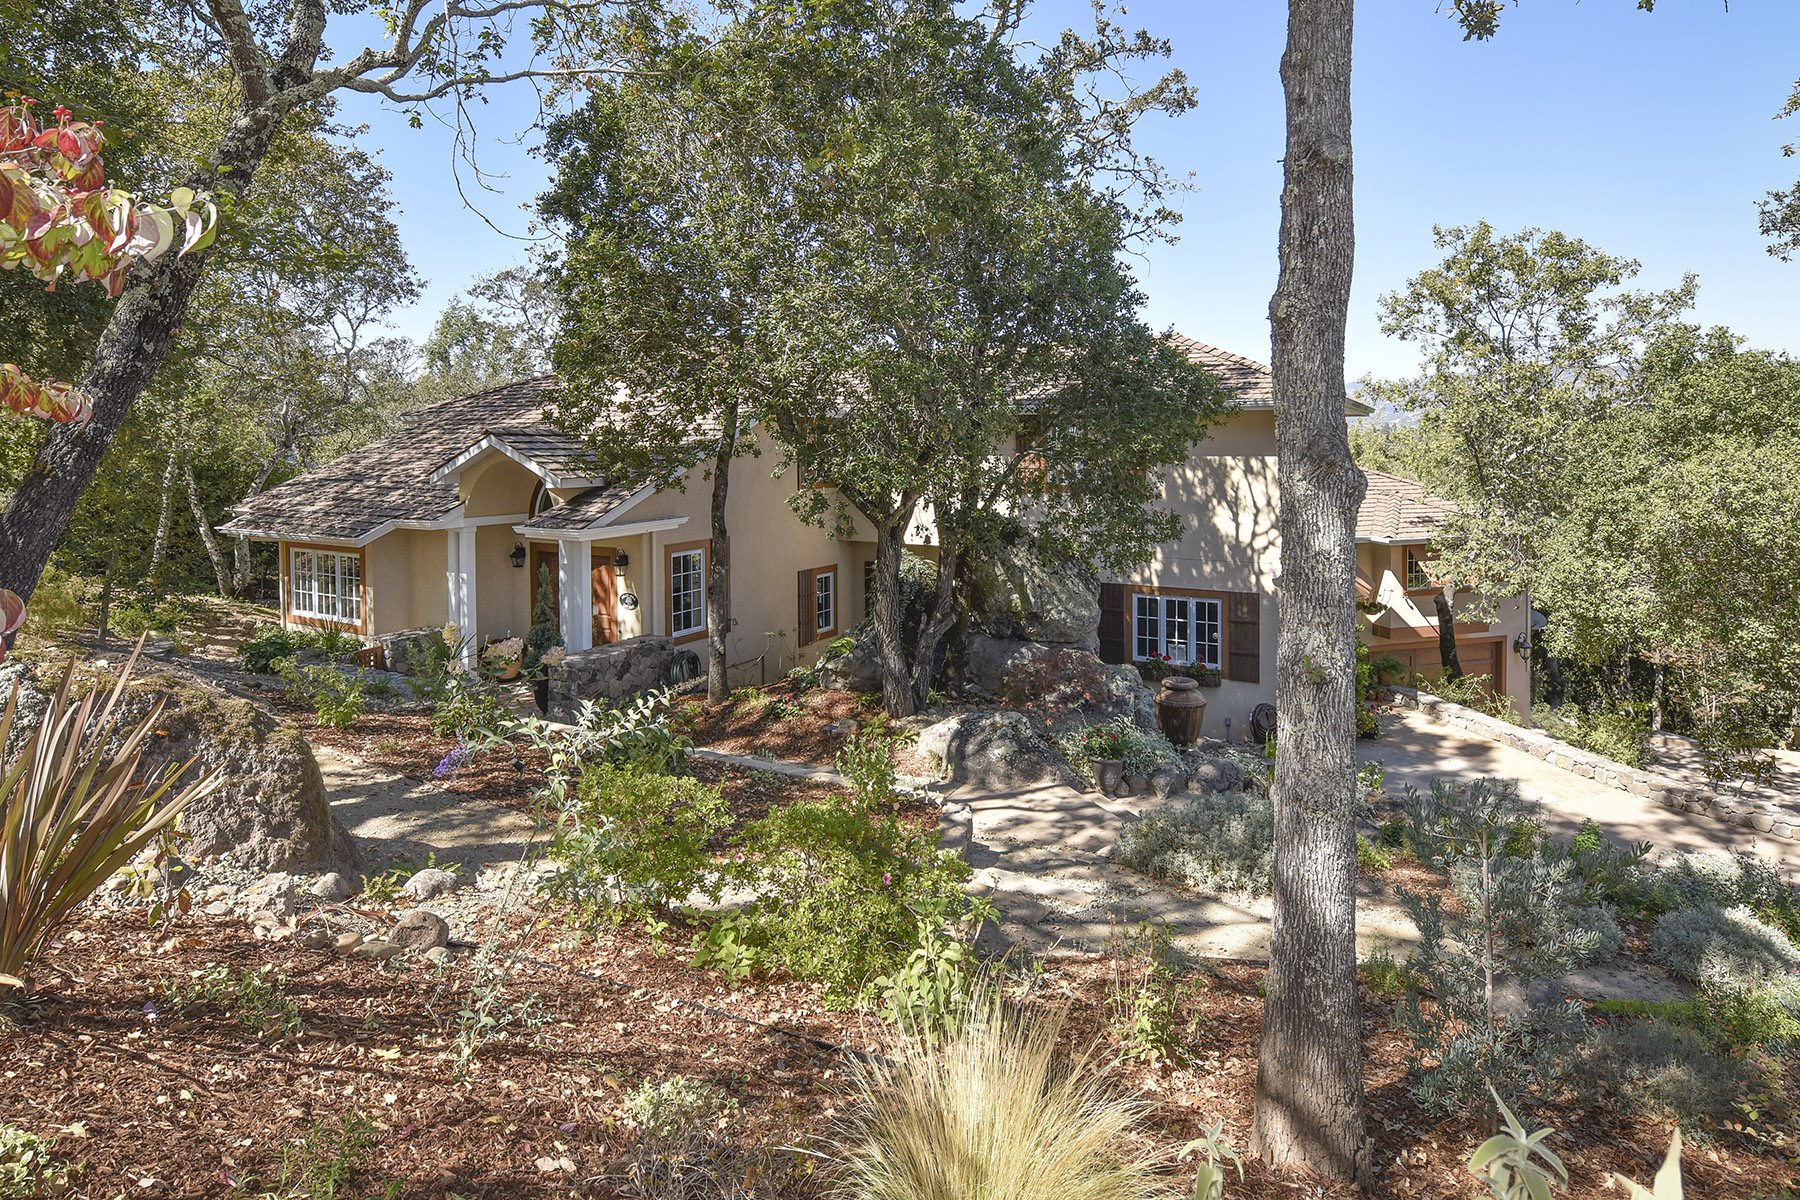 Single Family Home for Sale at 5 Old Coach Rd, Napa, CA 94558 5 Old Coach Rd Napa, California, 94558 United States